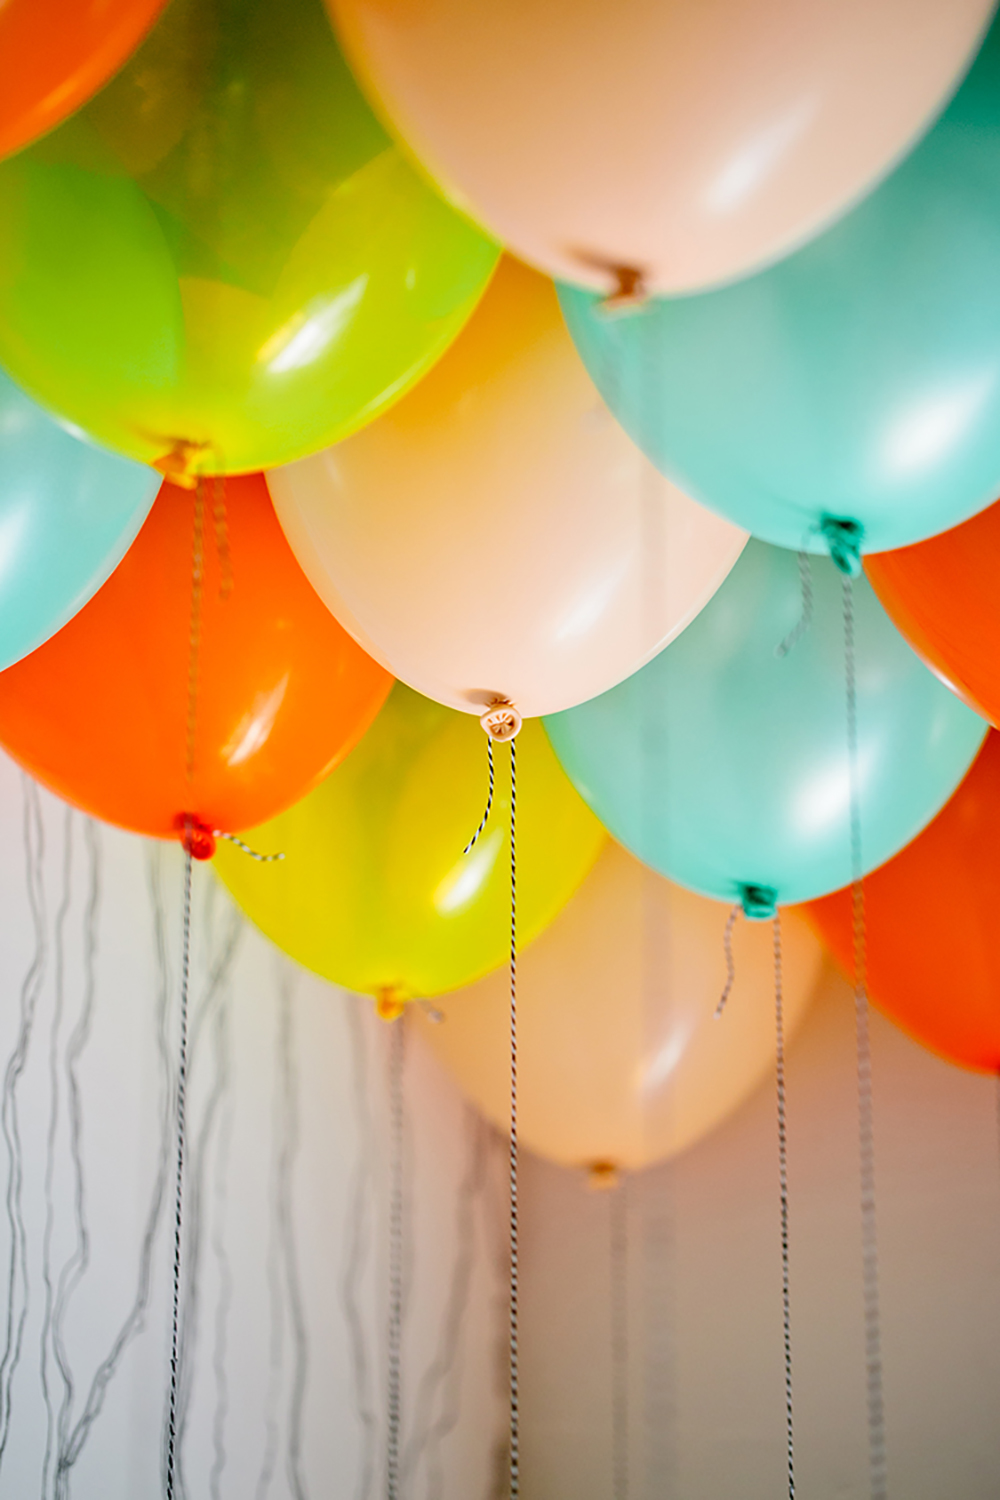 Balloon Ceiling DIY with Free Tag Printables- photo Isabelle Selby https://ruffledblog.com/balloon-ceiling-diy-with-free-hang-tag-printables/